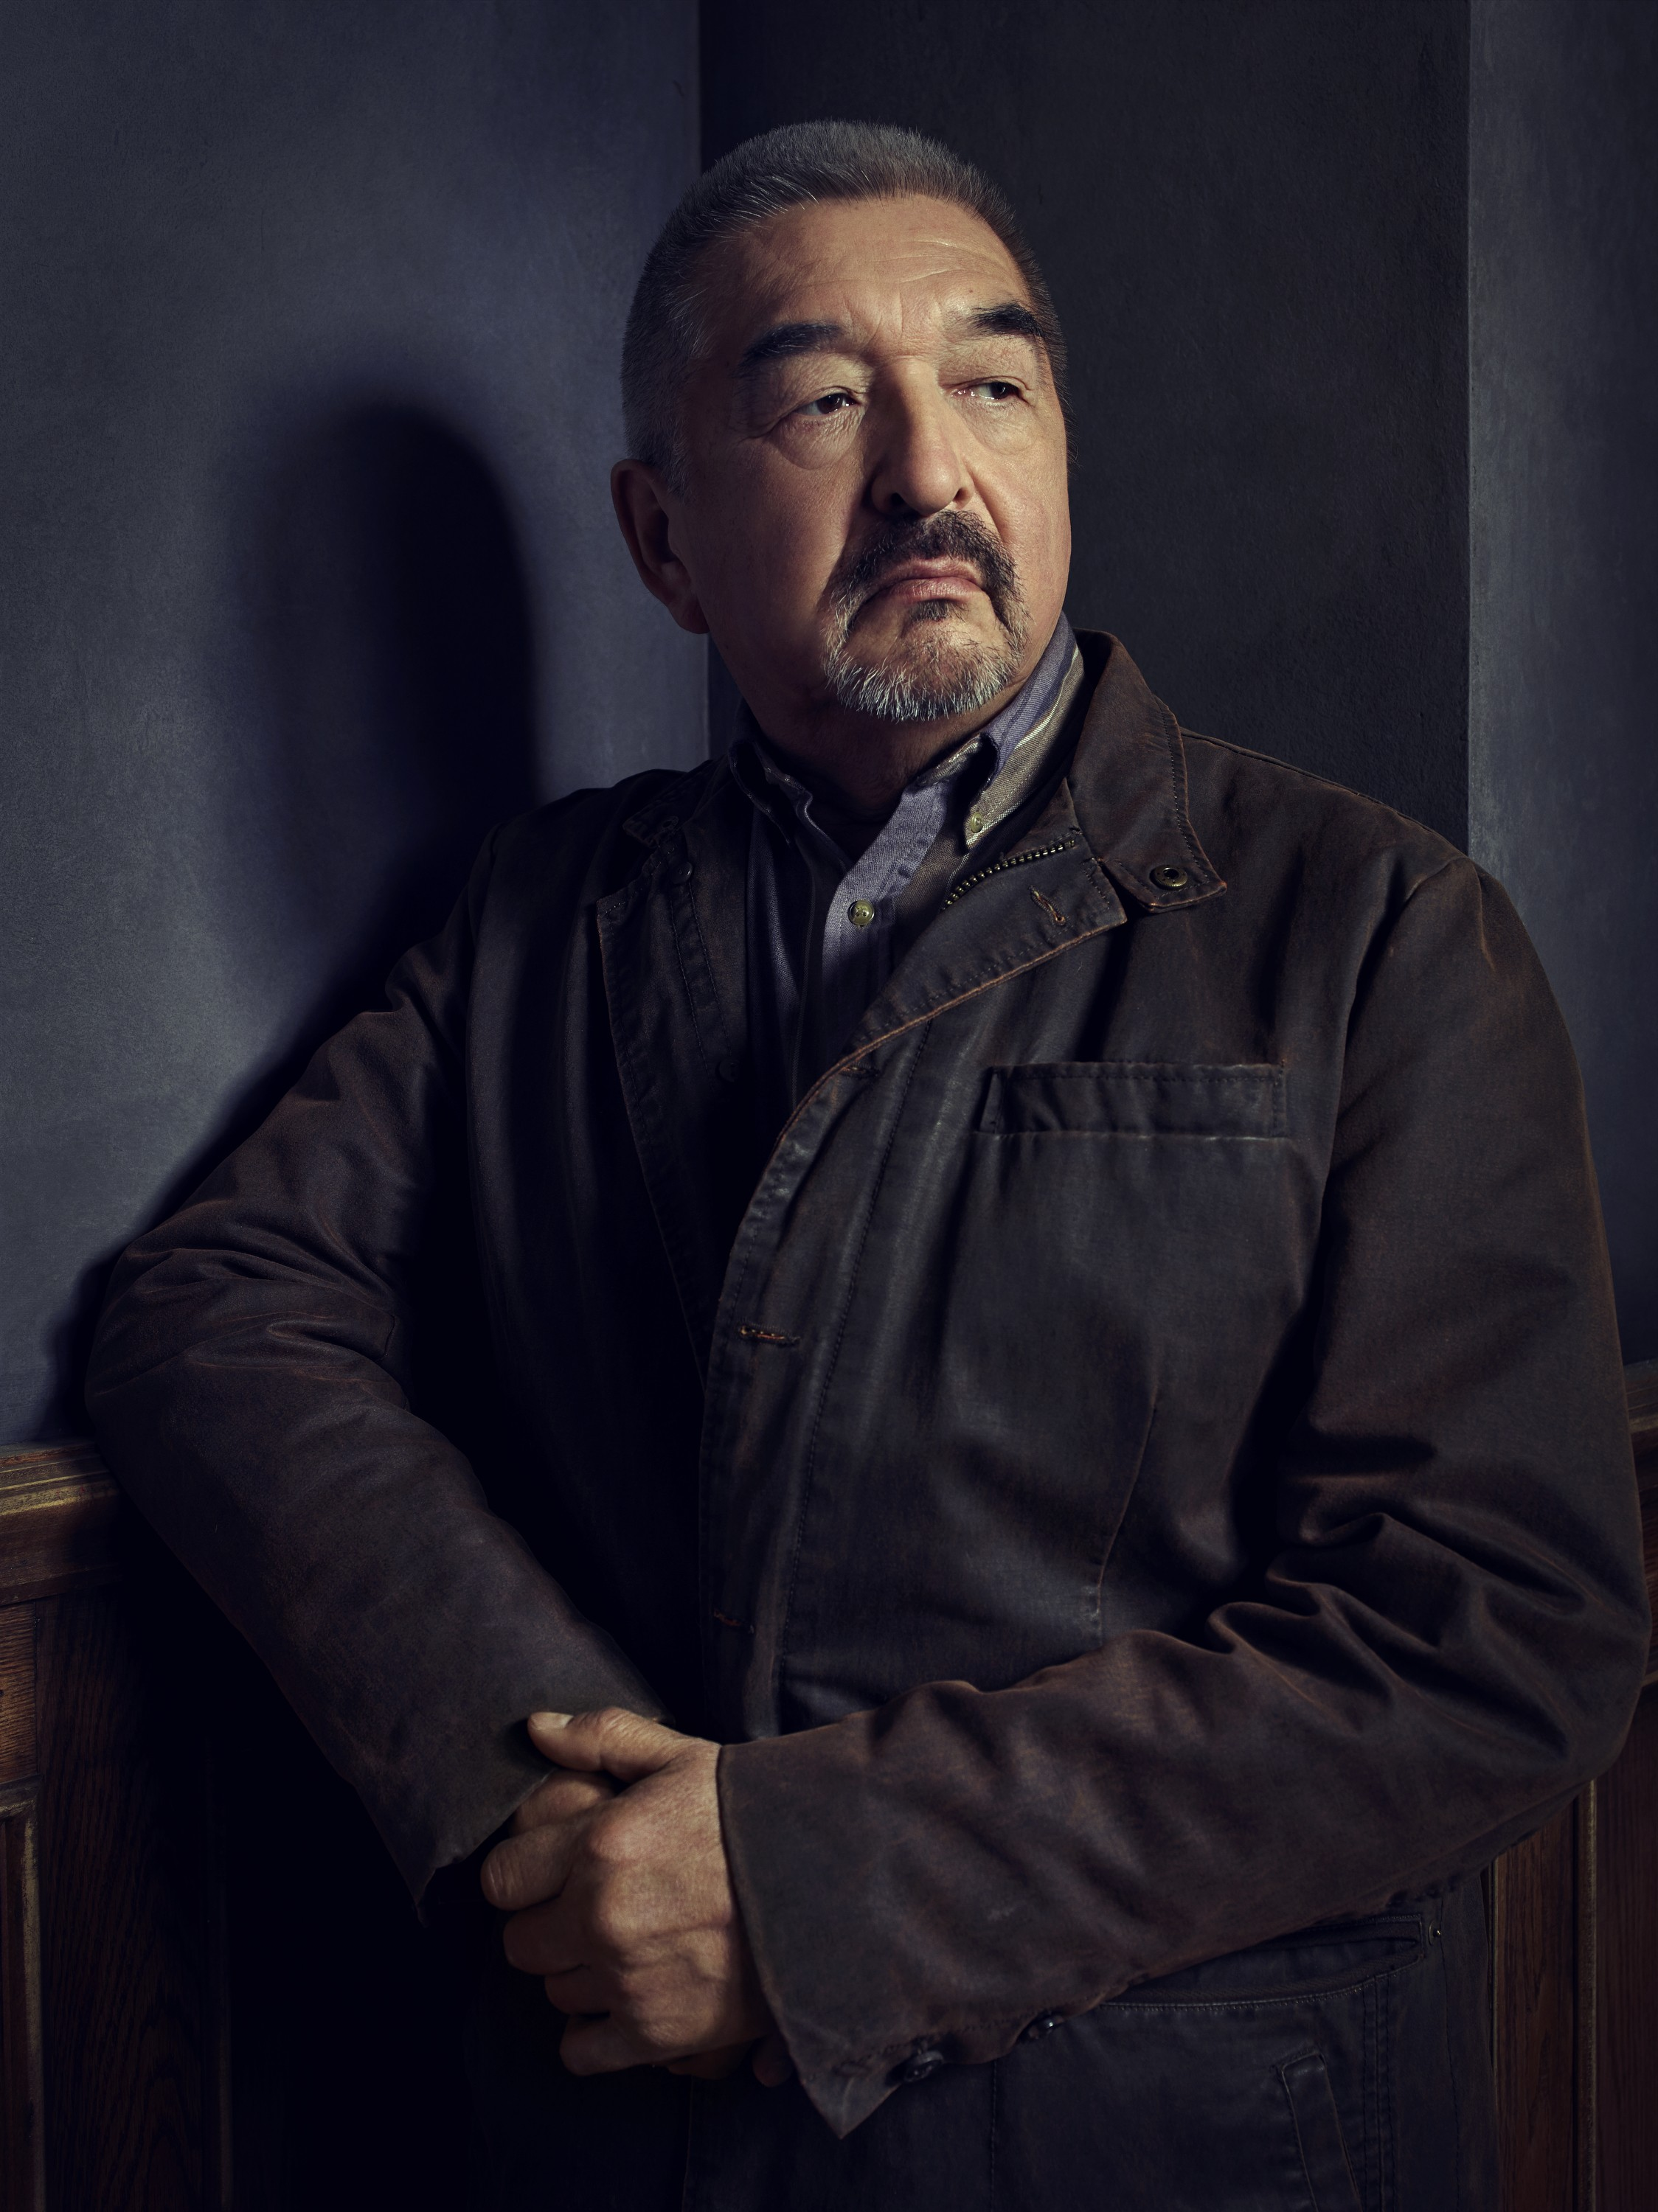 Defiance season 2 - Graham Greene as Rafe McCawley sitting